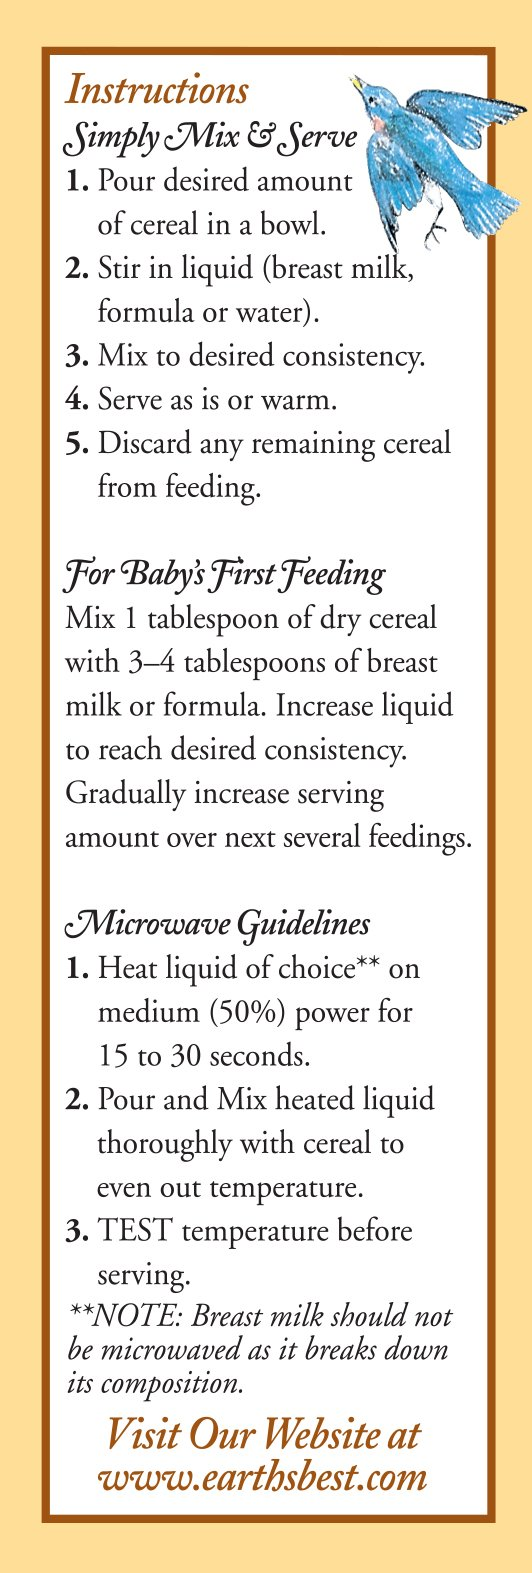 Earth's Best Organic Infant Cereal, Whole Grain Oatmeal with Bananas, 8 Oz - Packaging May Vary by Earth's Best (Image #3)